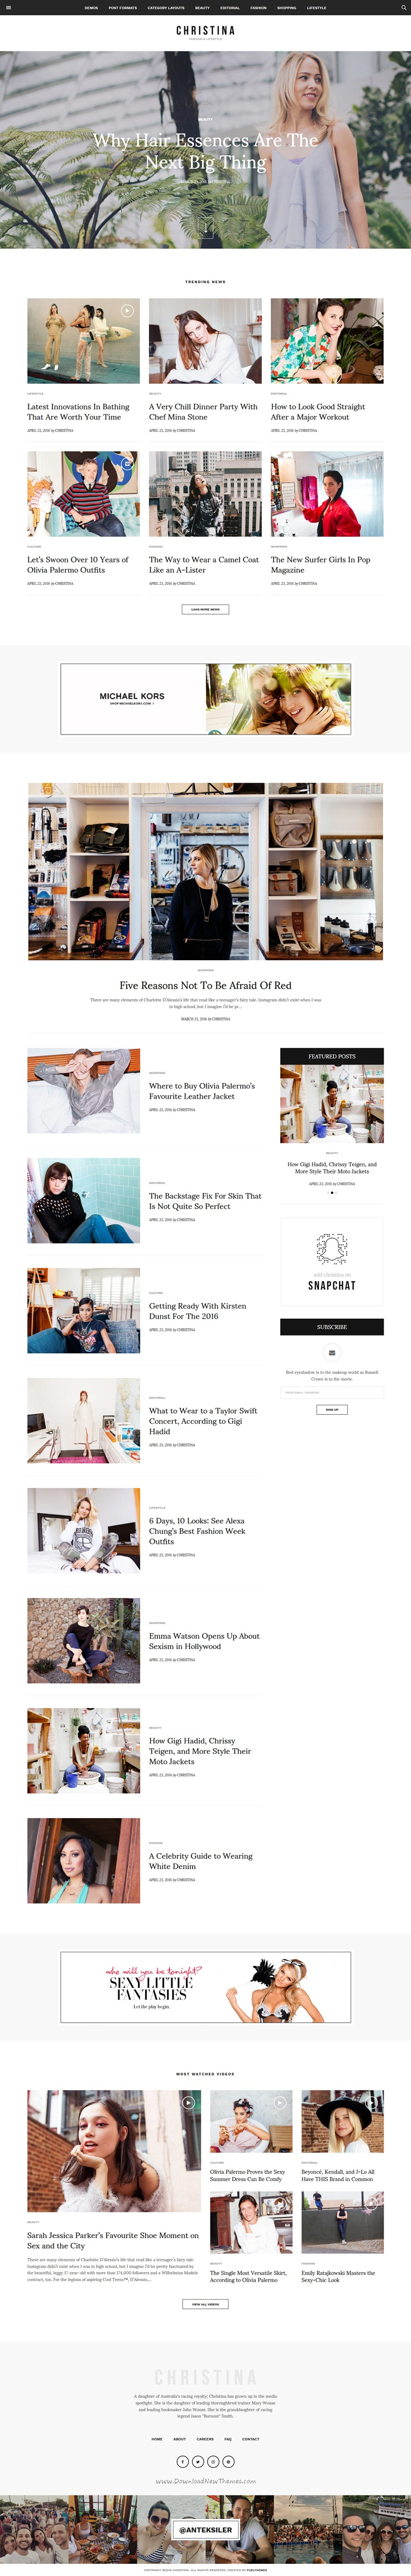 Christina is an wonderful premium #WordPress theme for #Fashion & #Lifestyle Responsive Magazine website with 3 stunning homepage layouts download now➯ https://themeforest.net/item/christina-fashion-lifestyle-responsive-magazine-theme/15987713?ref=Datasata